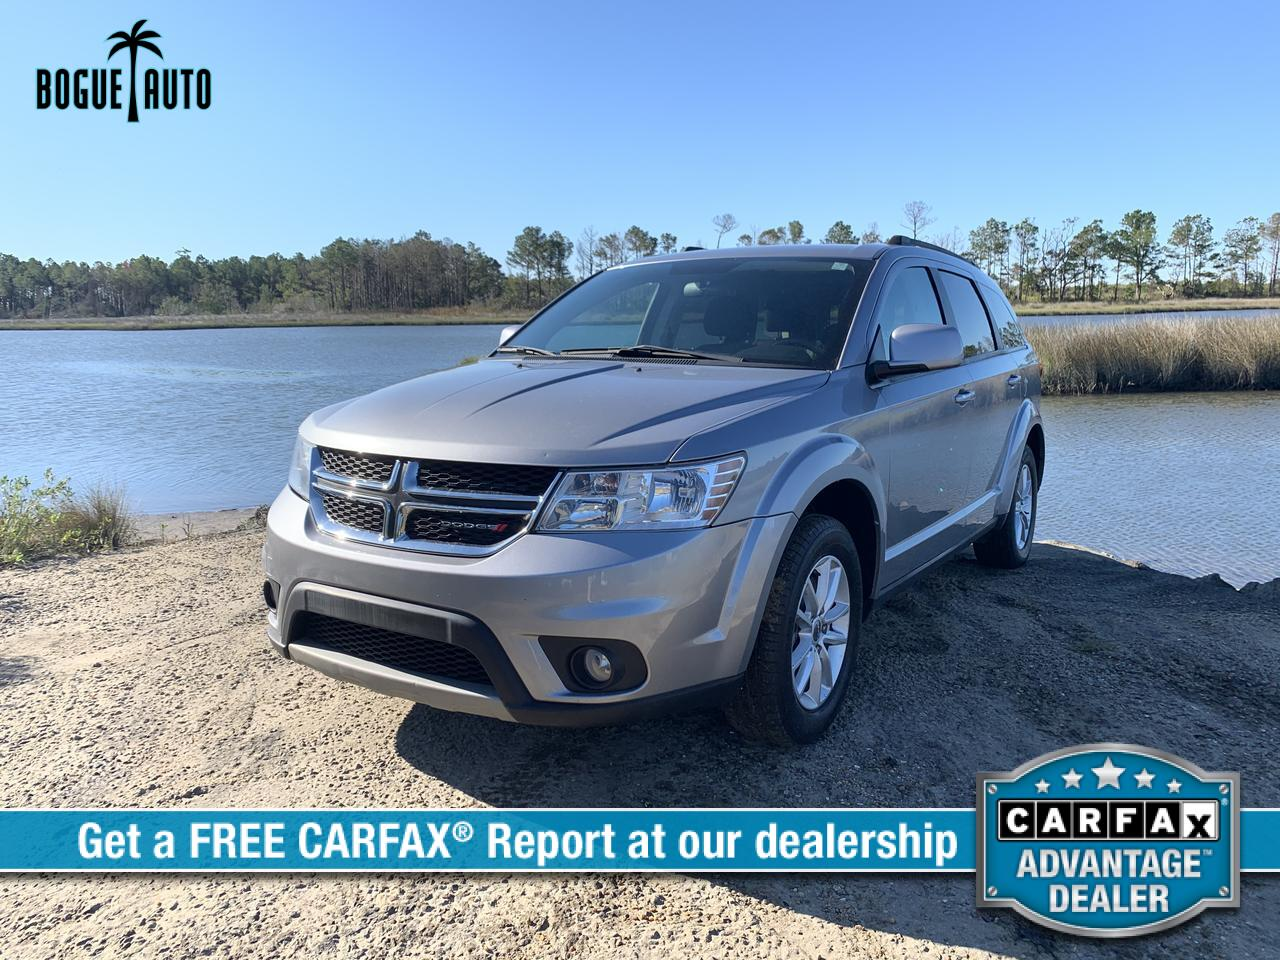 2017 DODGE JOURNEY SXT Newport NC